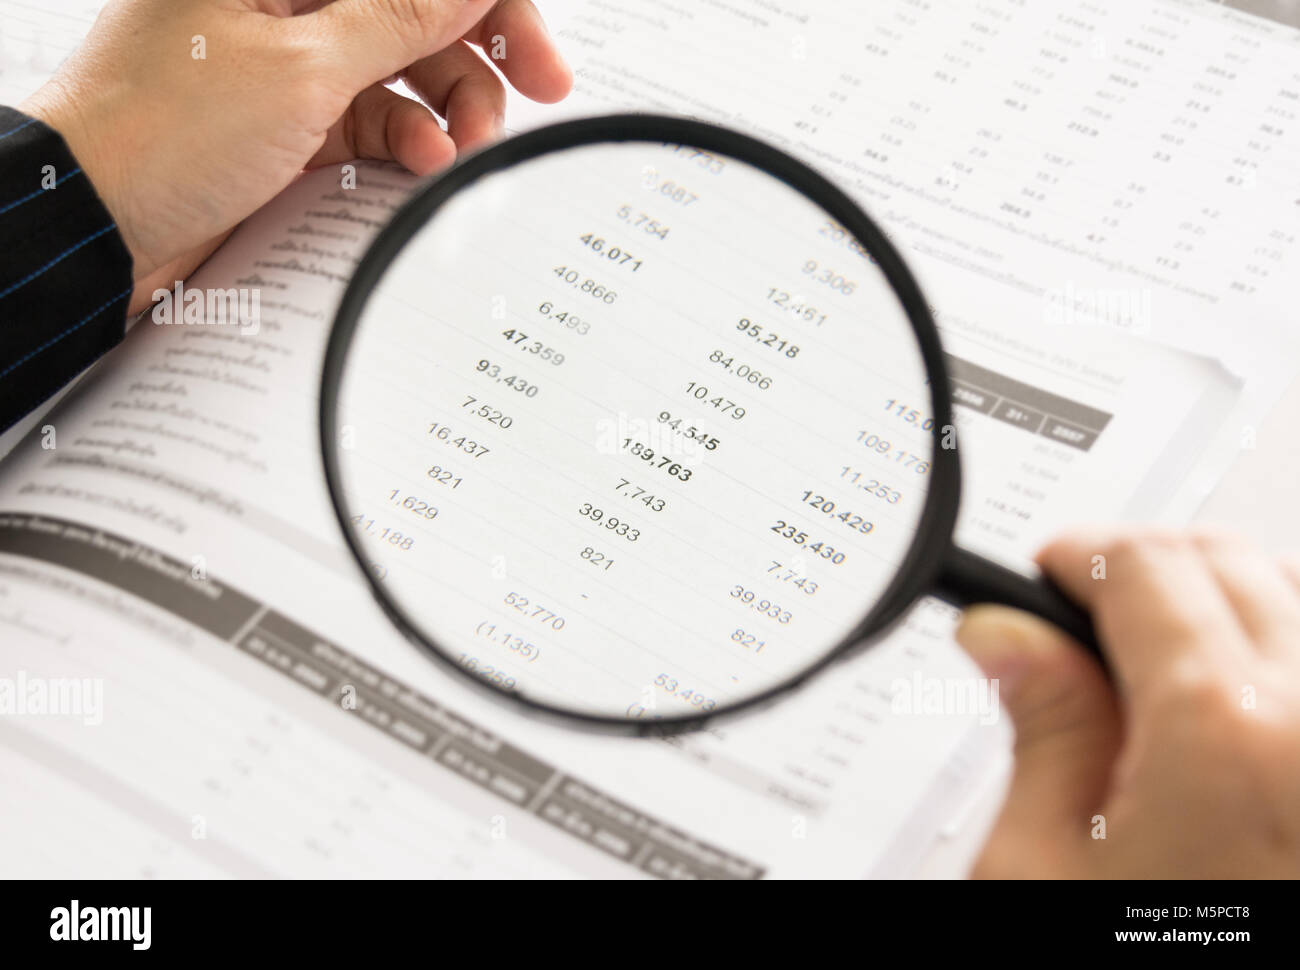 auditor or internal revenue service staff checking annual financial statements of company - Stock Image